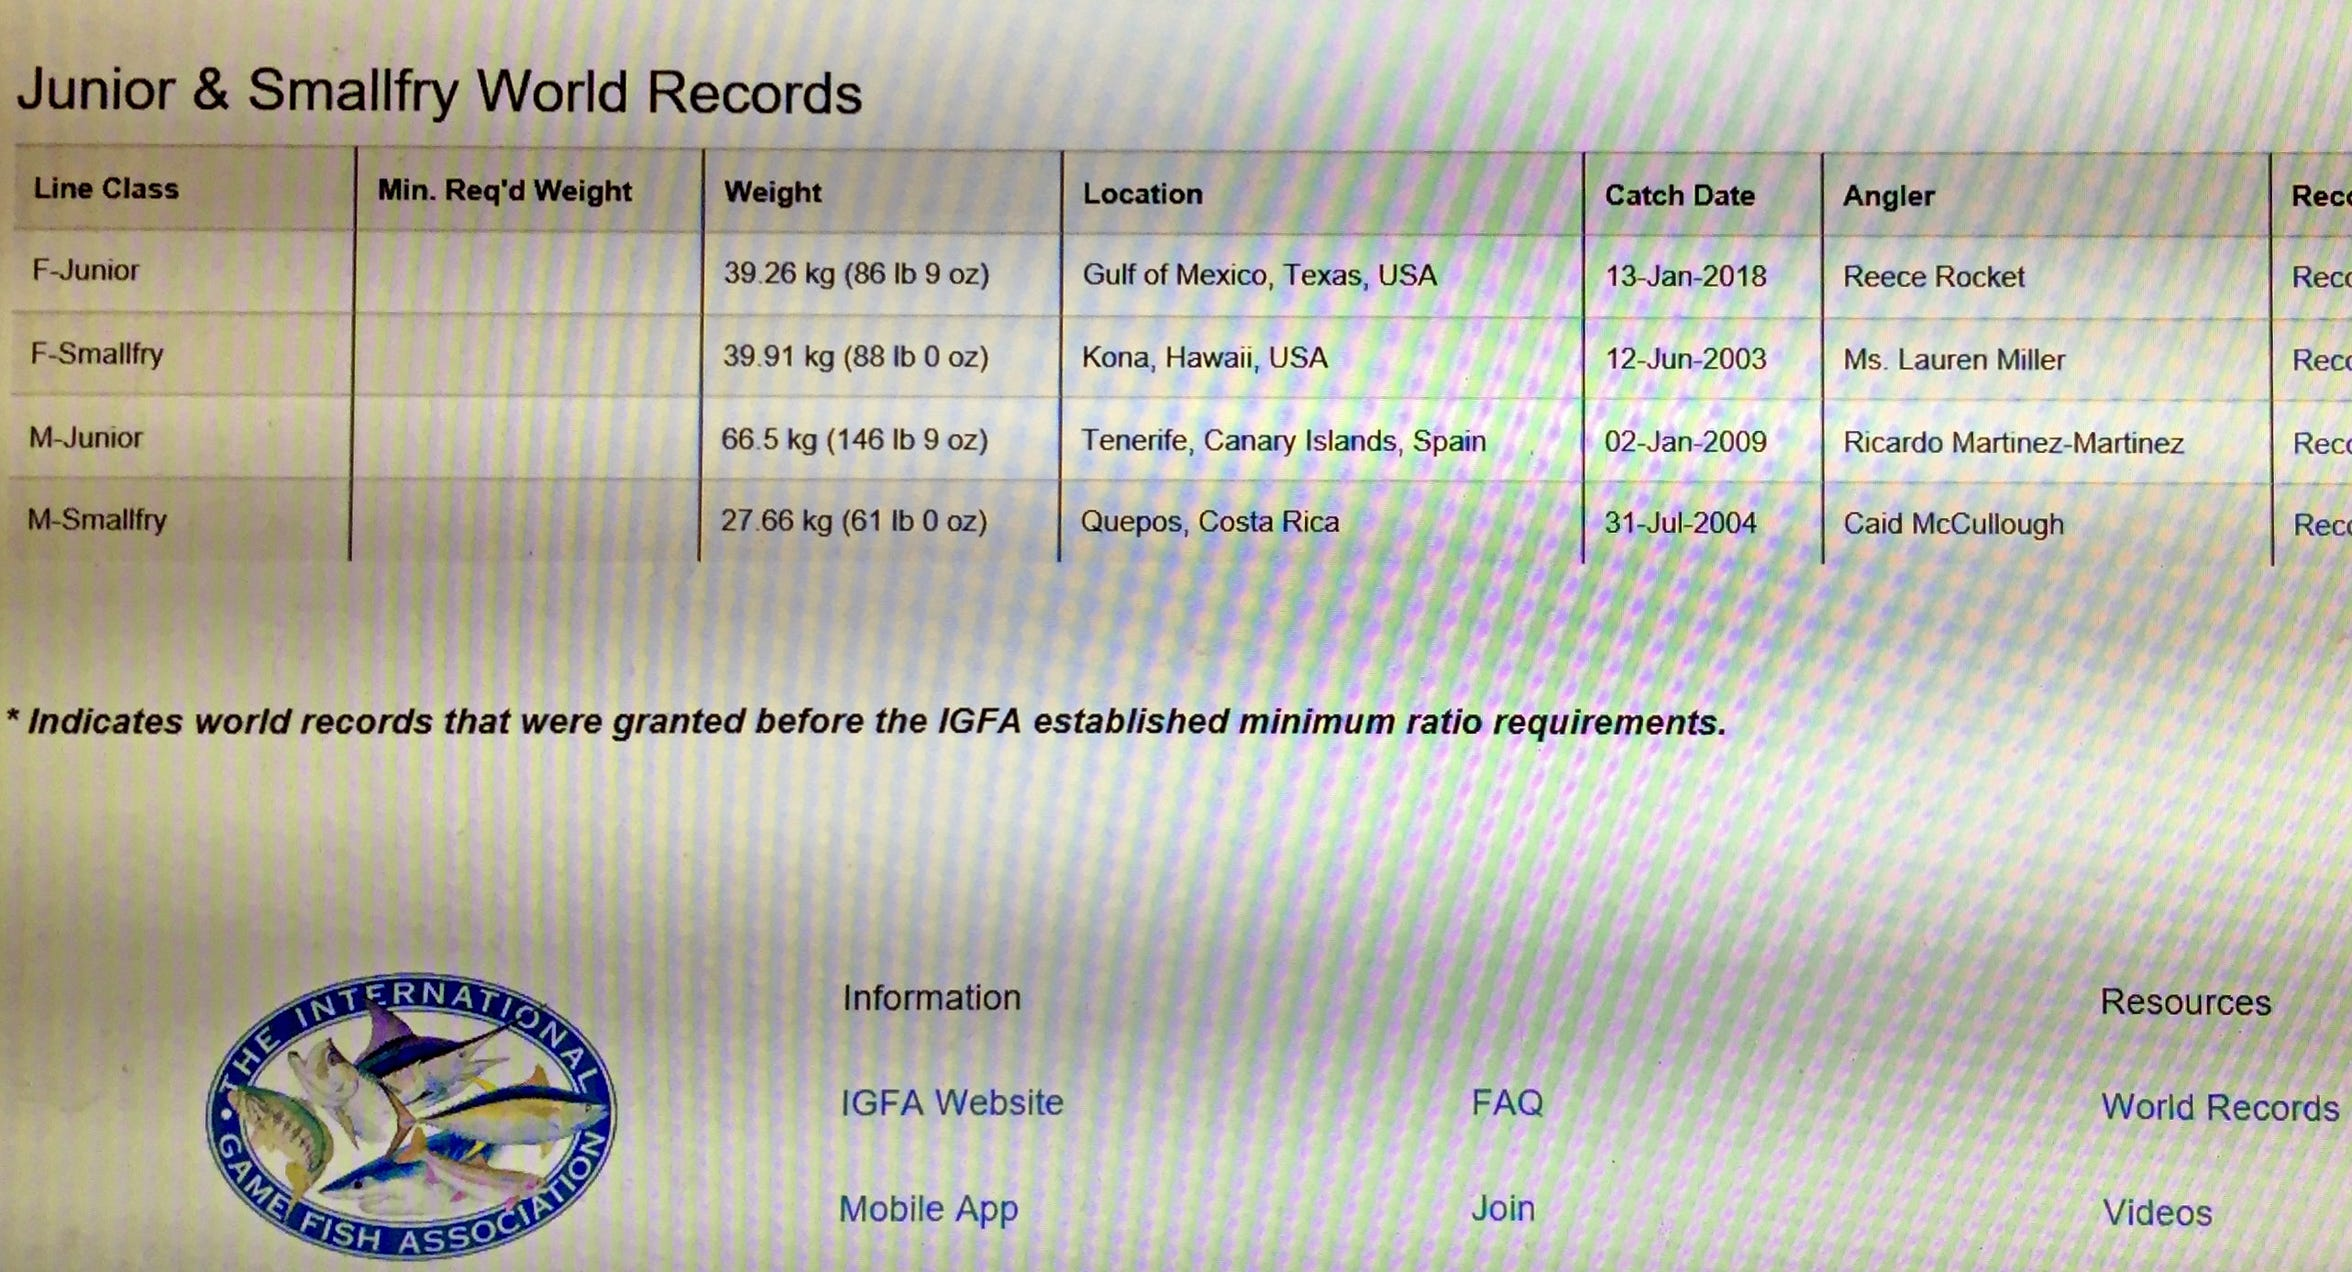 Reece Rockett has been waiting eight months for the IGFA to approve her application for this junior amberjack world record.